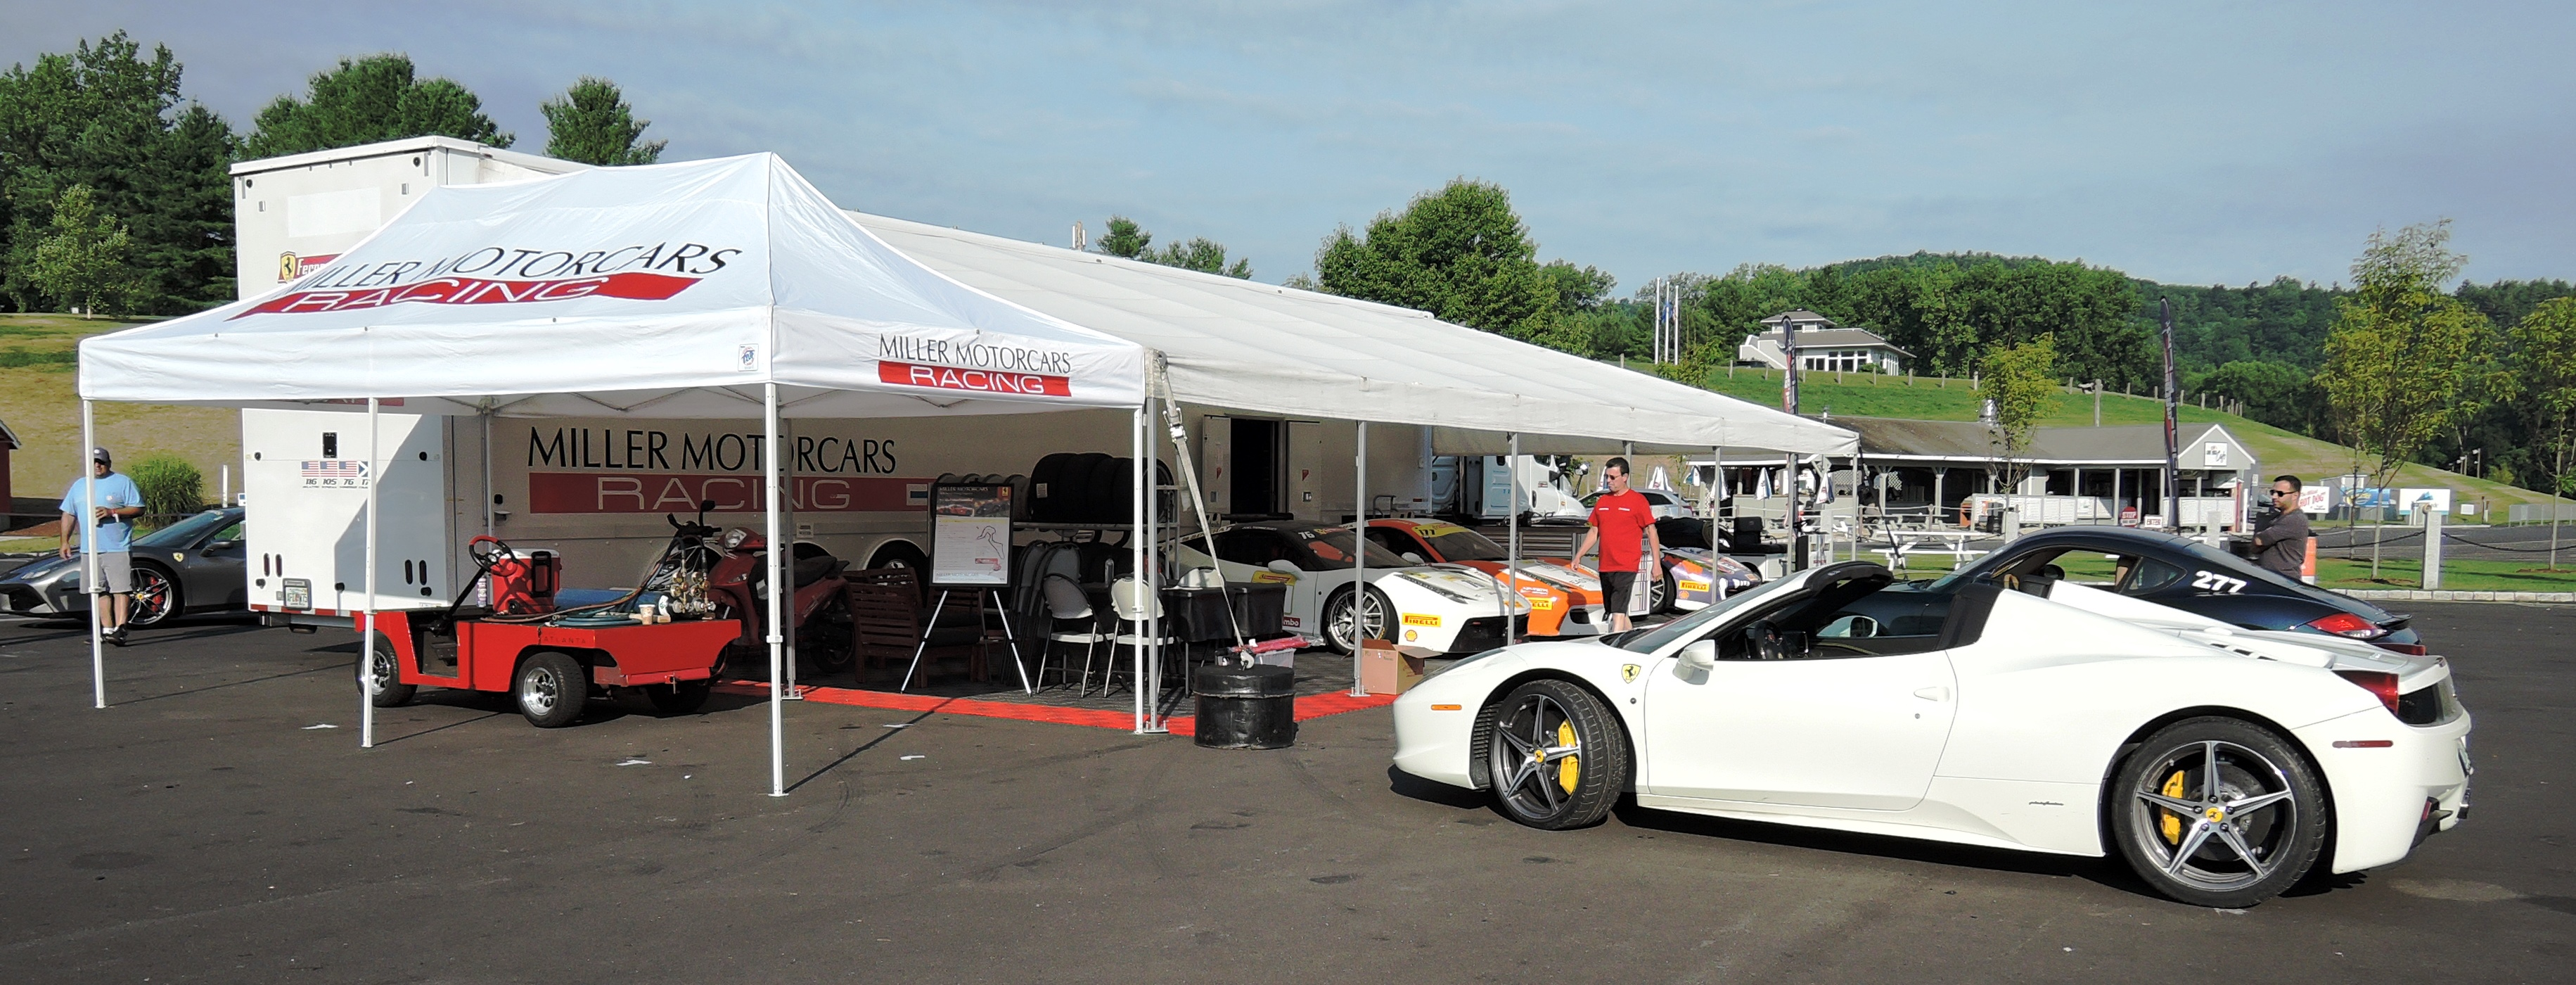 Ferrari 458 Challenge Cars at Miller Motorcars - ferraris at lime rock